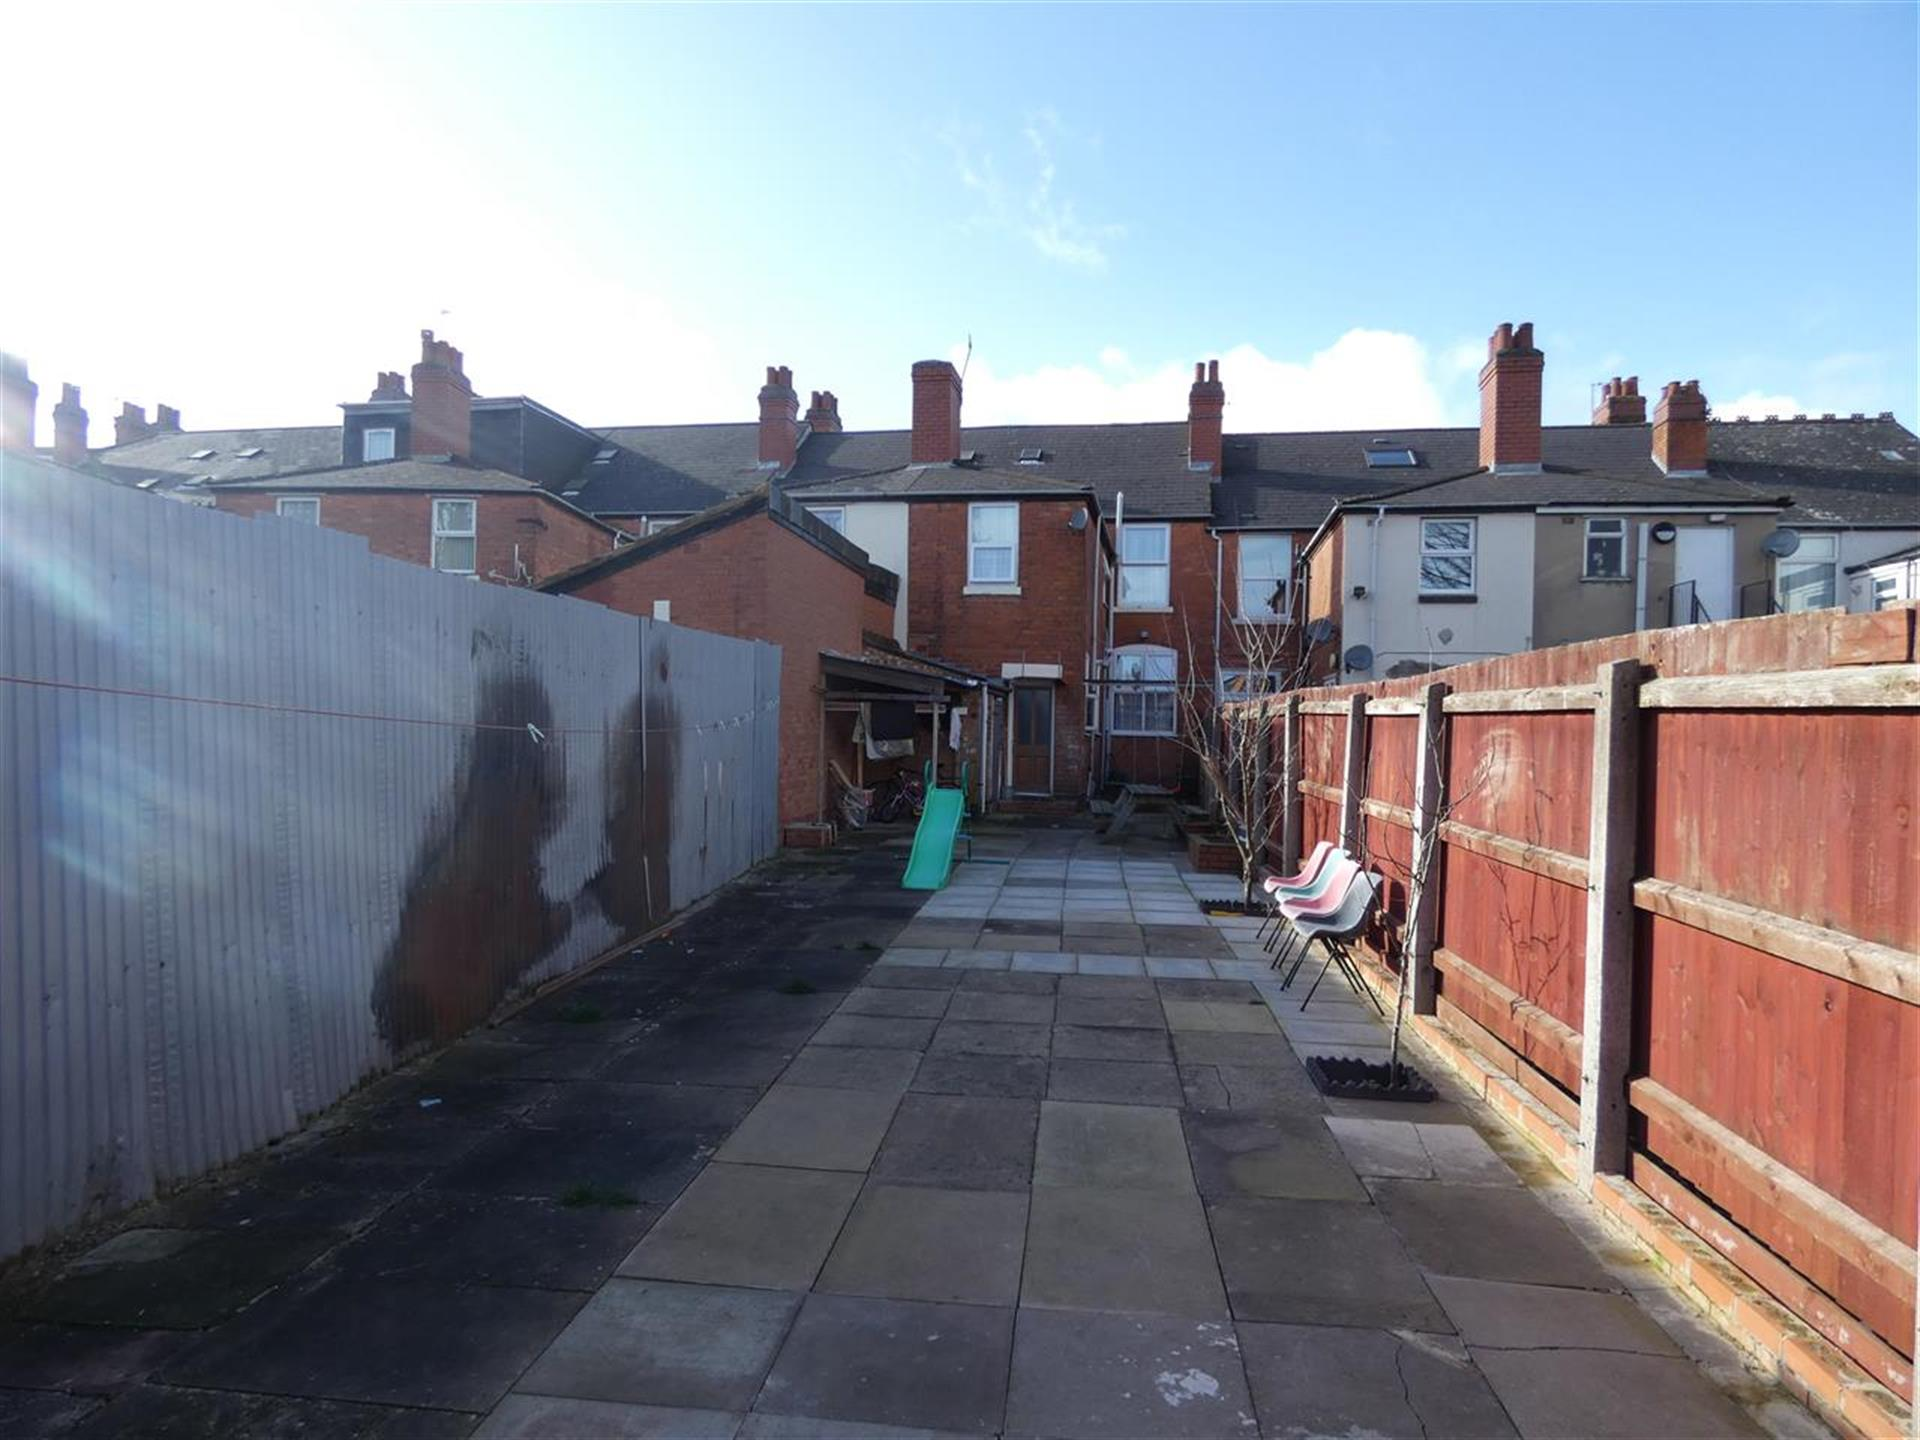 4 Bedroom Terraced House For Sale - Image 12